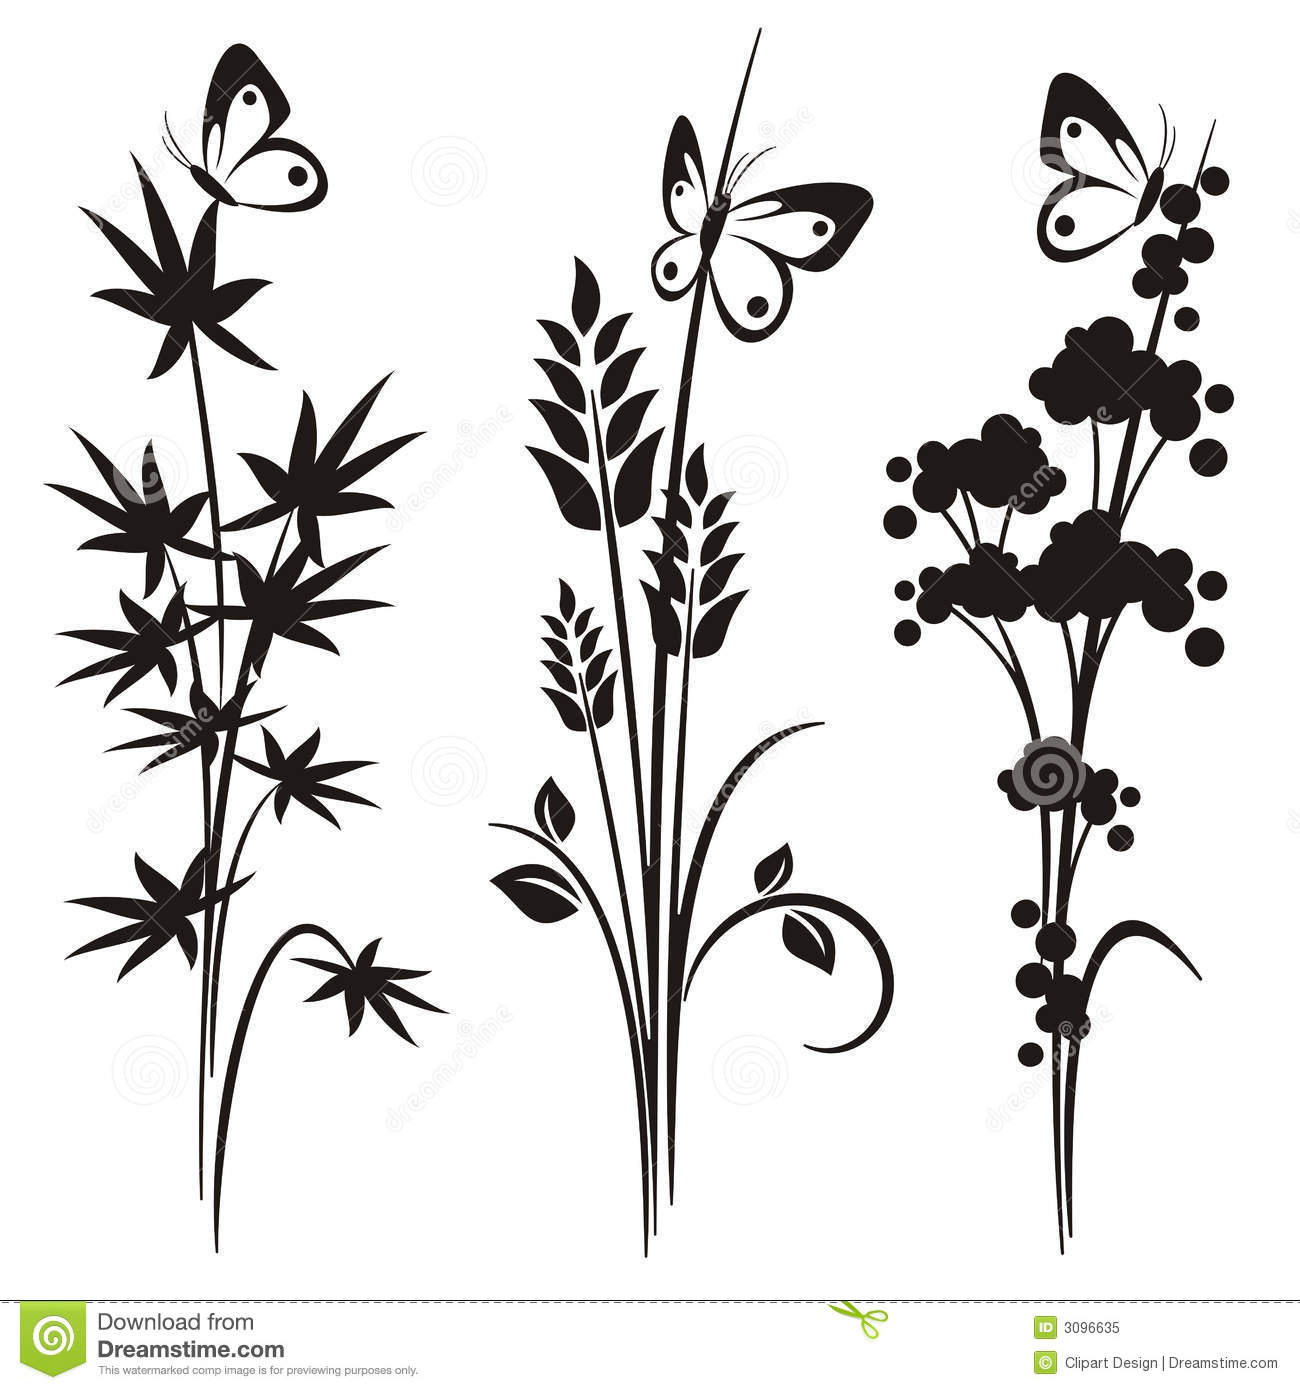 Six Black Flower Design Stock Images: Japanese Floral Design Series Stock Vector